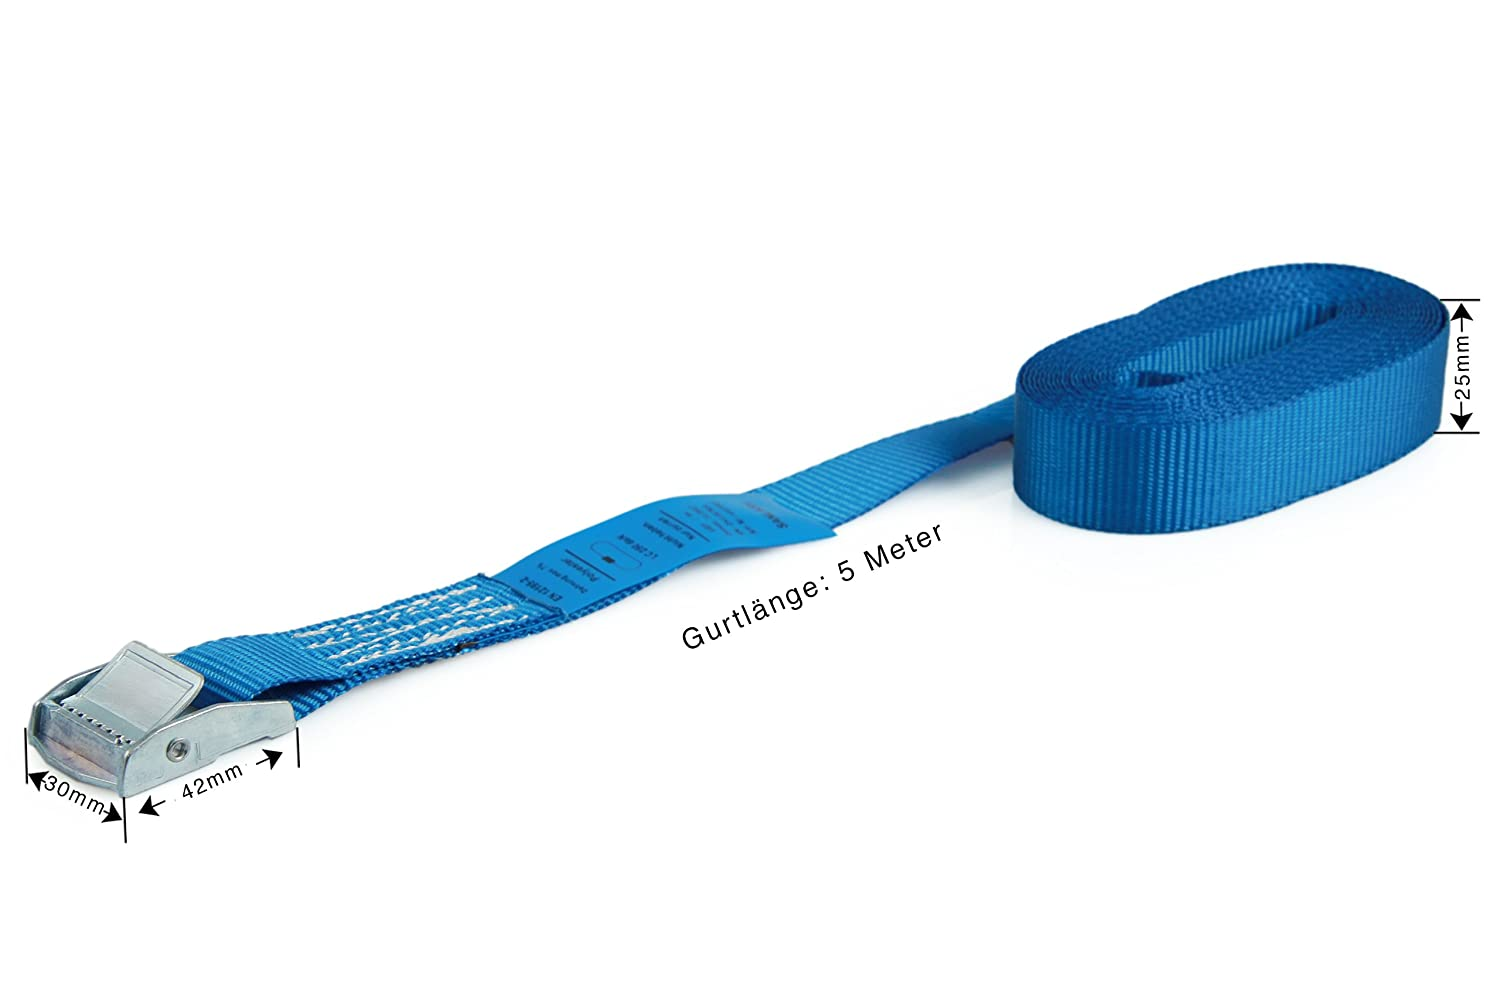 Set of 6 cam buckle tie down straps black according to DIN EN 12195-2 loadable up to 250kg one-piece length 4m width 25mm